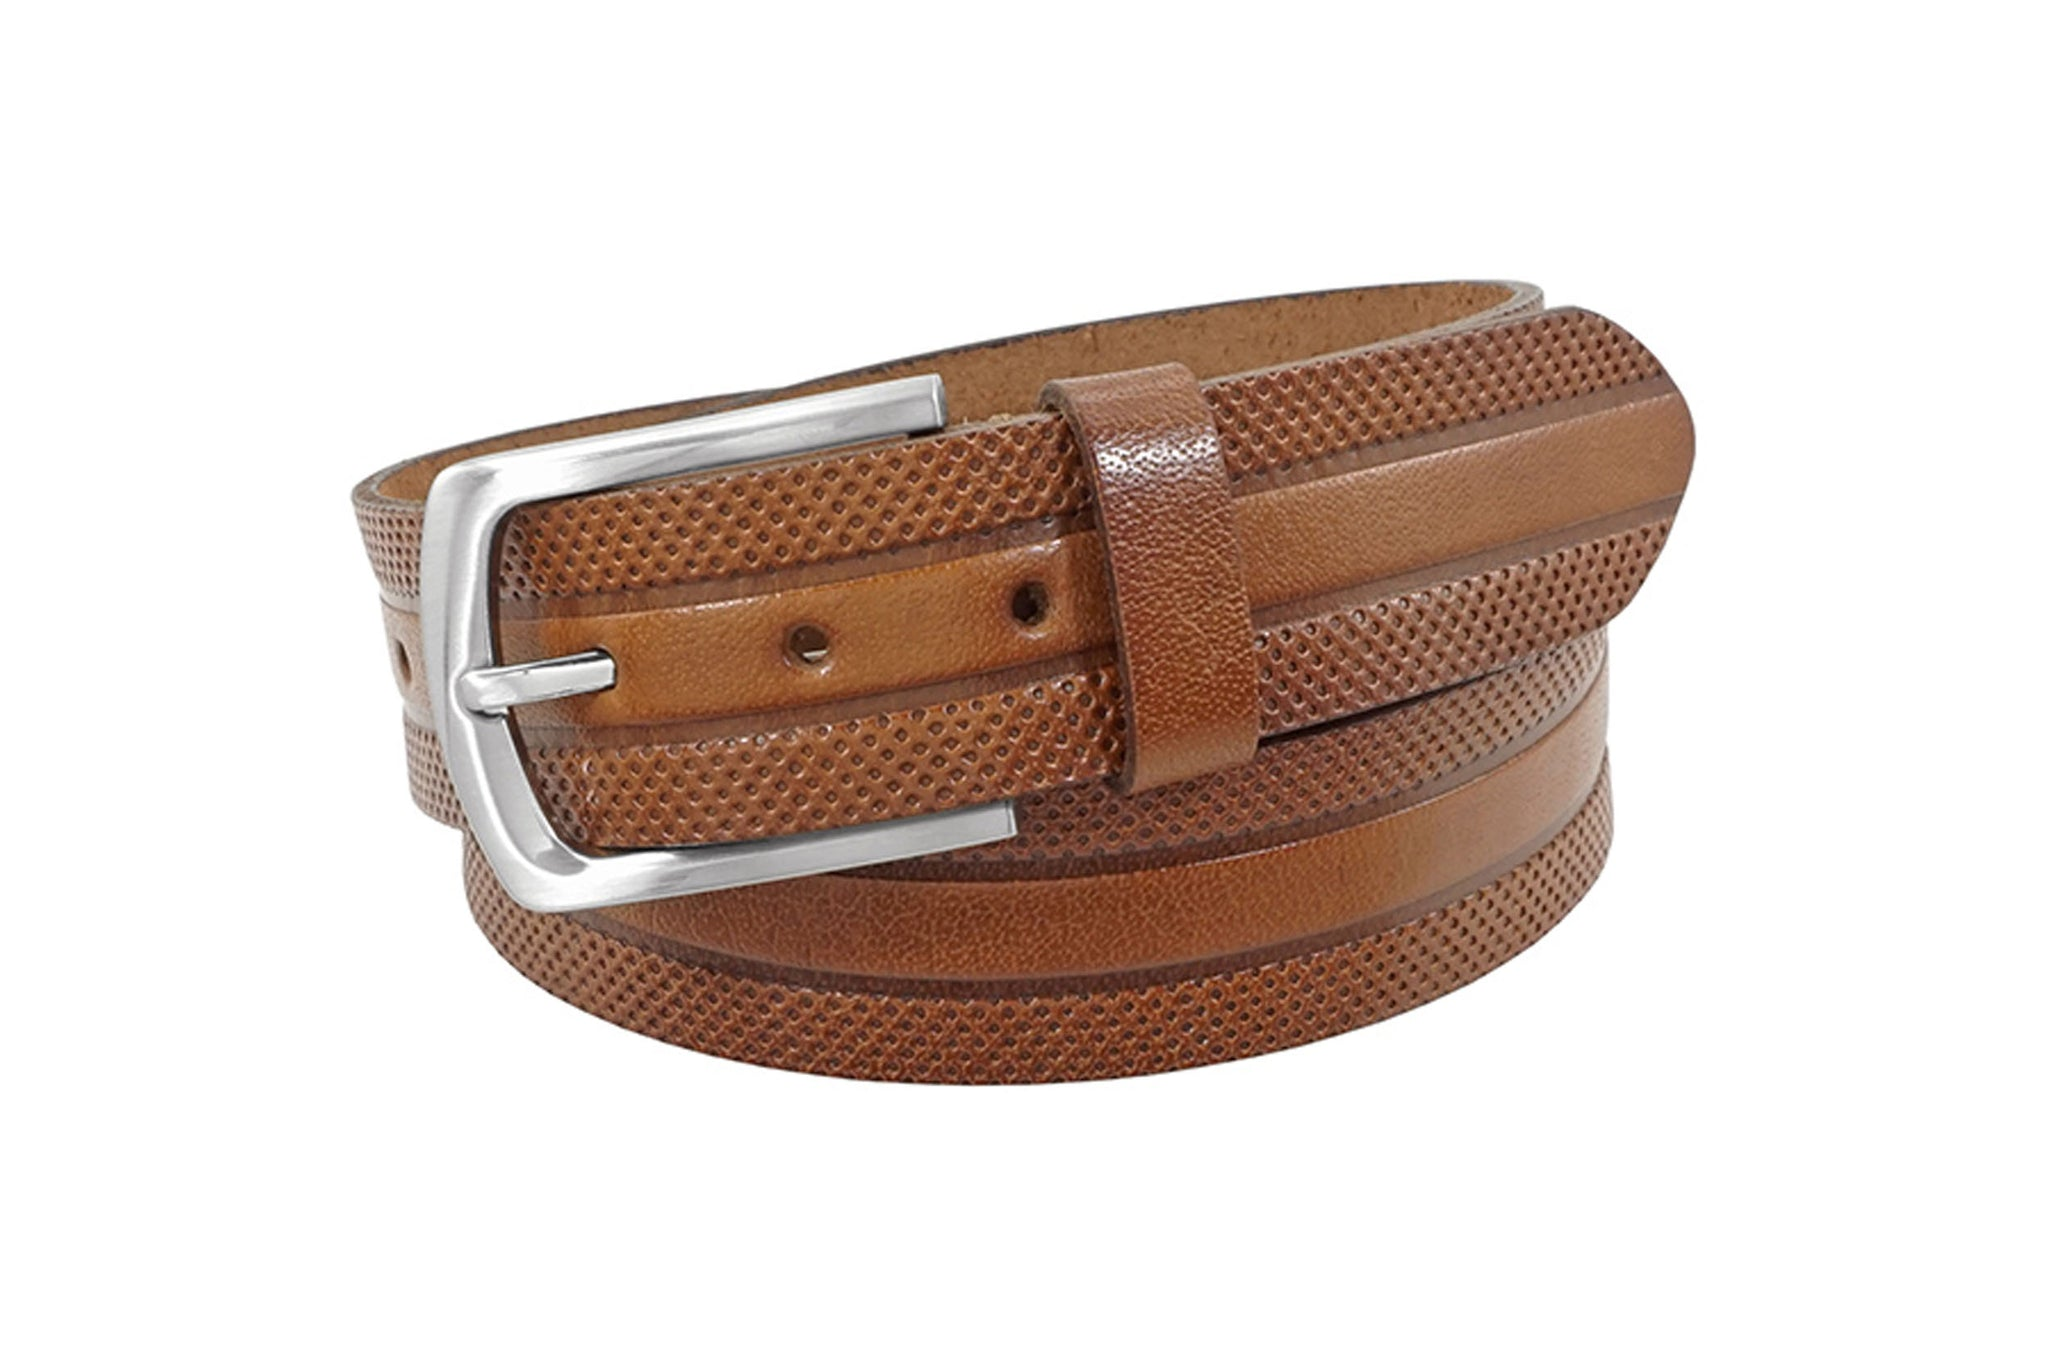 Cognac Leather Strap Belt With Embossed Design - Rainwater's Men's Clothing and Tuxedo Rental